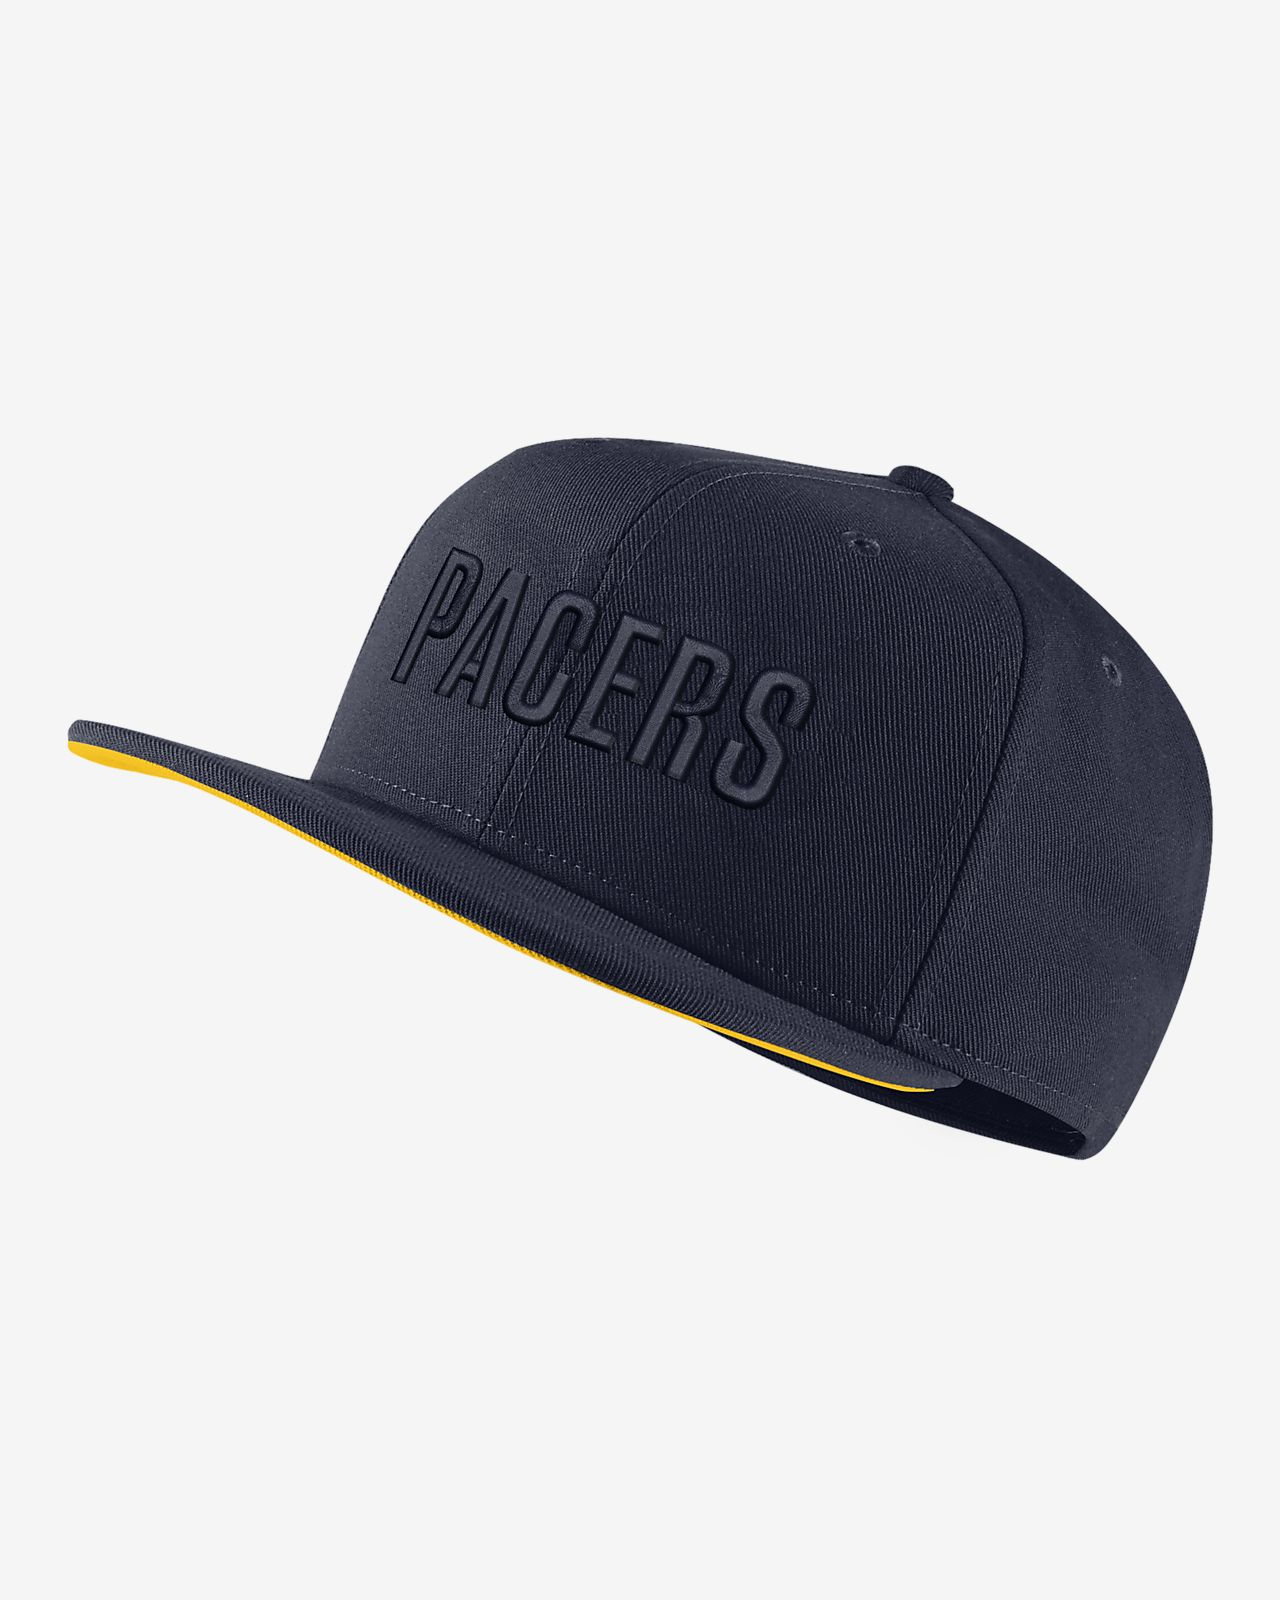 Indiana Pacers Nike AeroBill NBA Hat